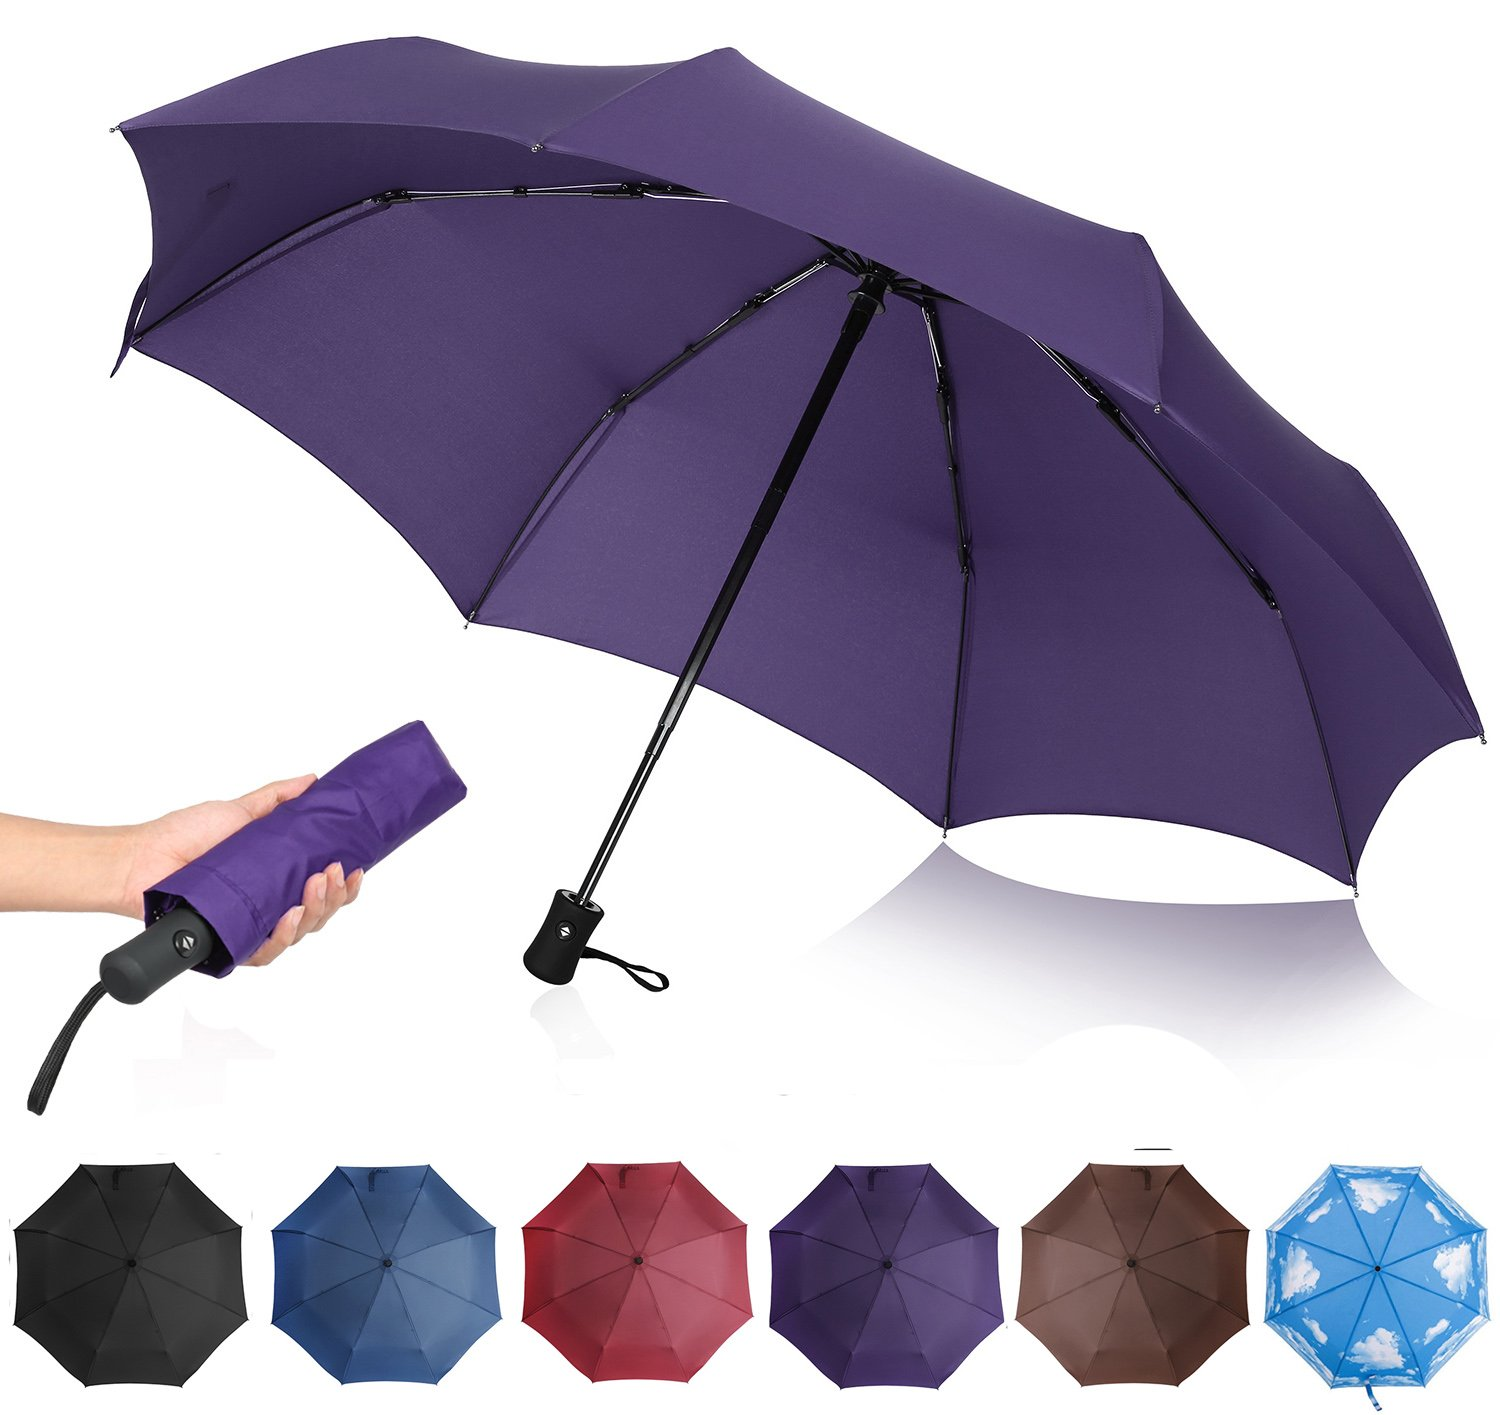 QHUMO Compact Travel Umbrella Windproof, Auto Open Close Umbrellas for Women Men by QHUMO (Image #1)